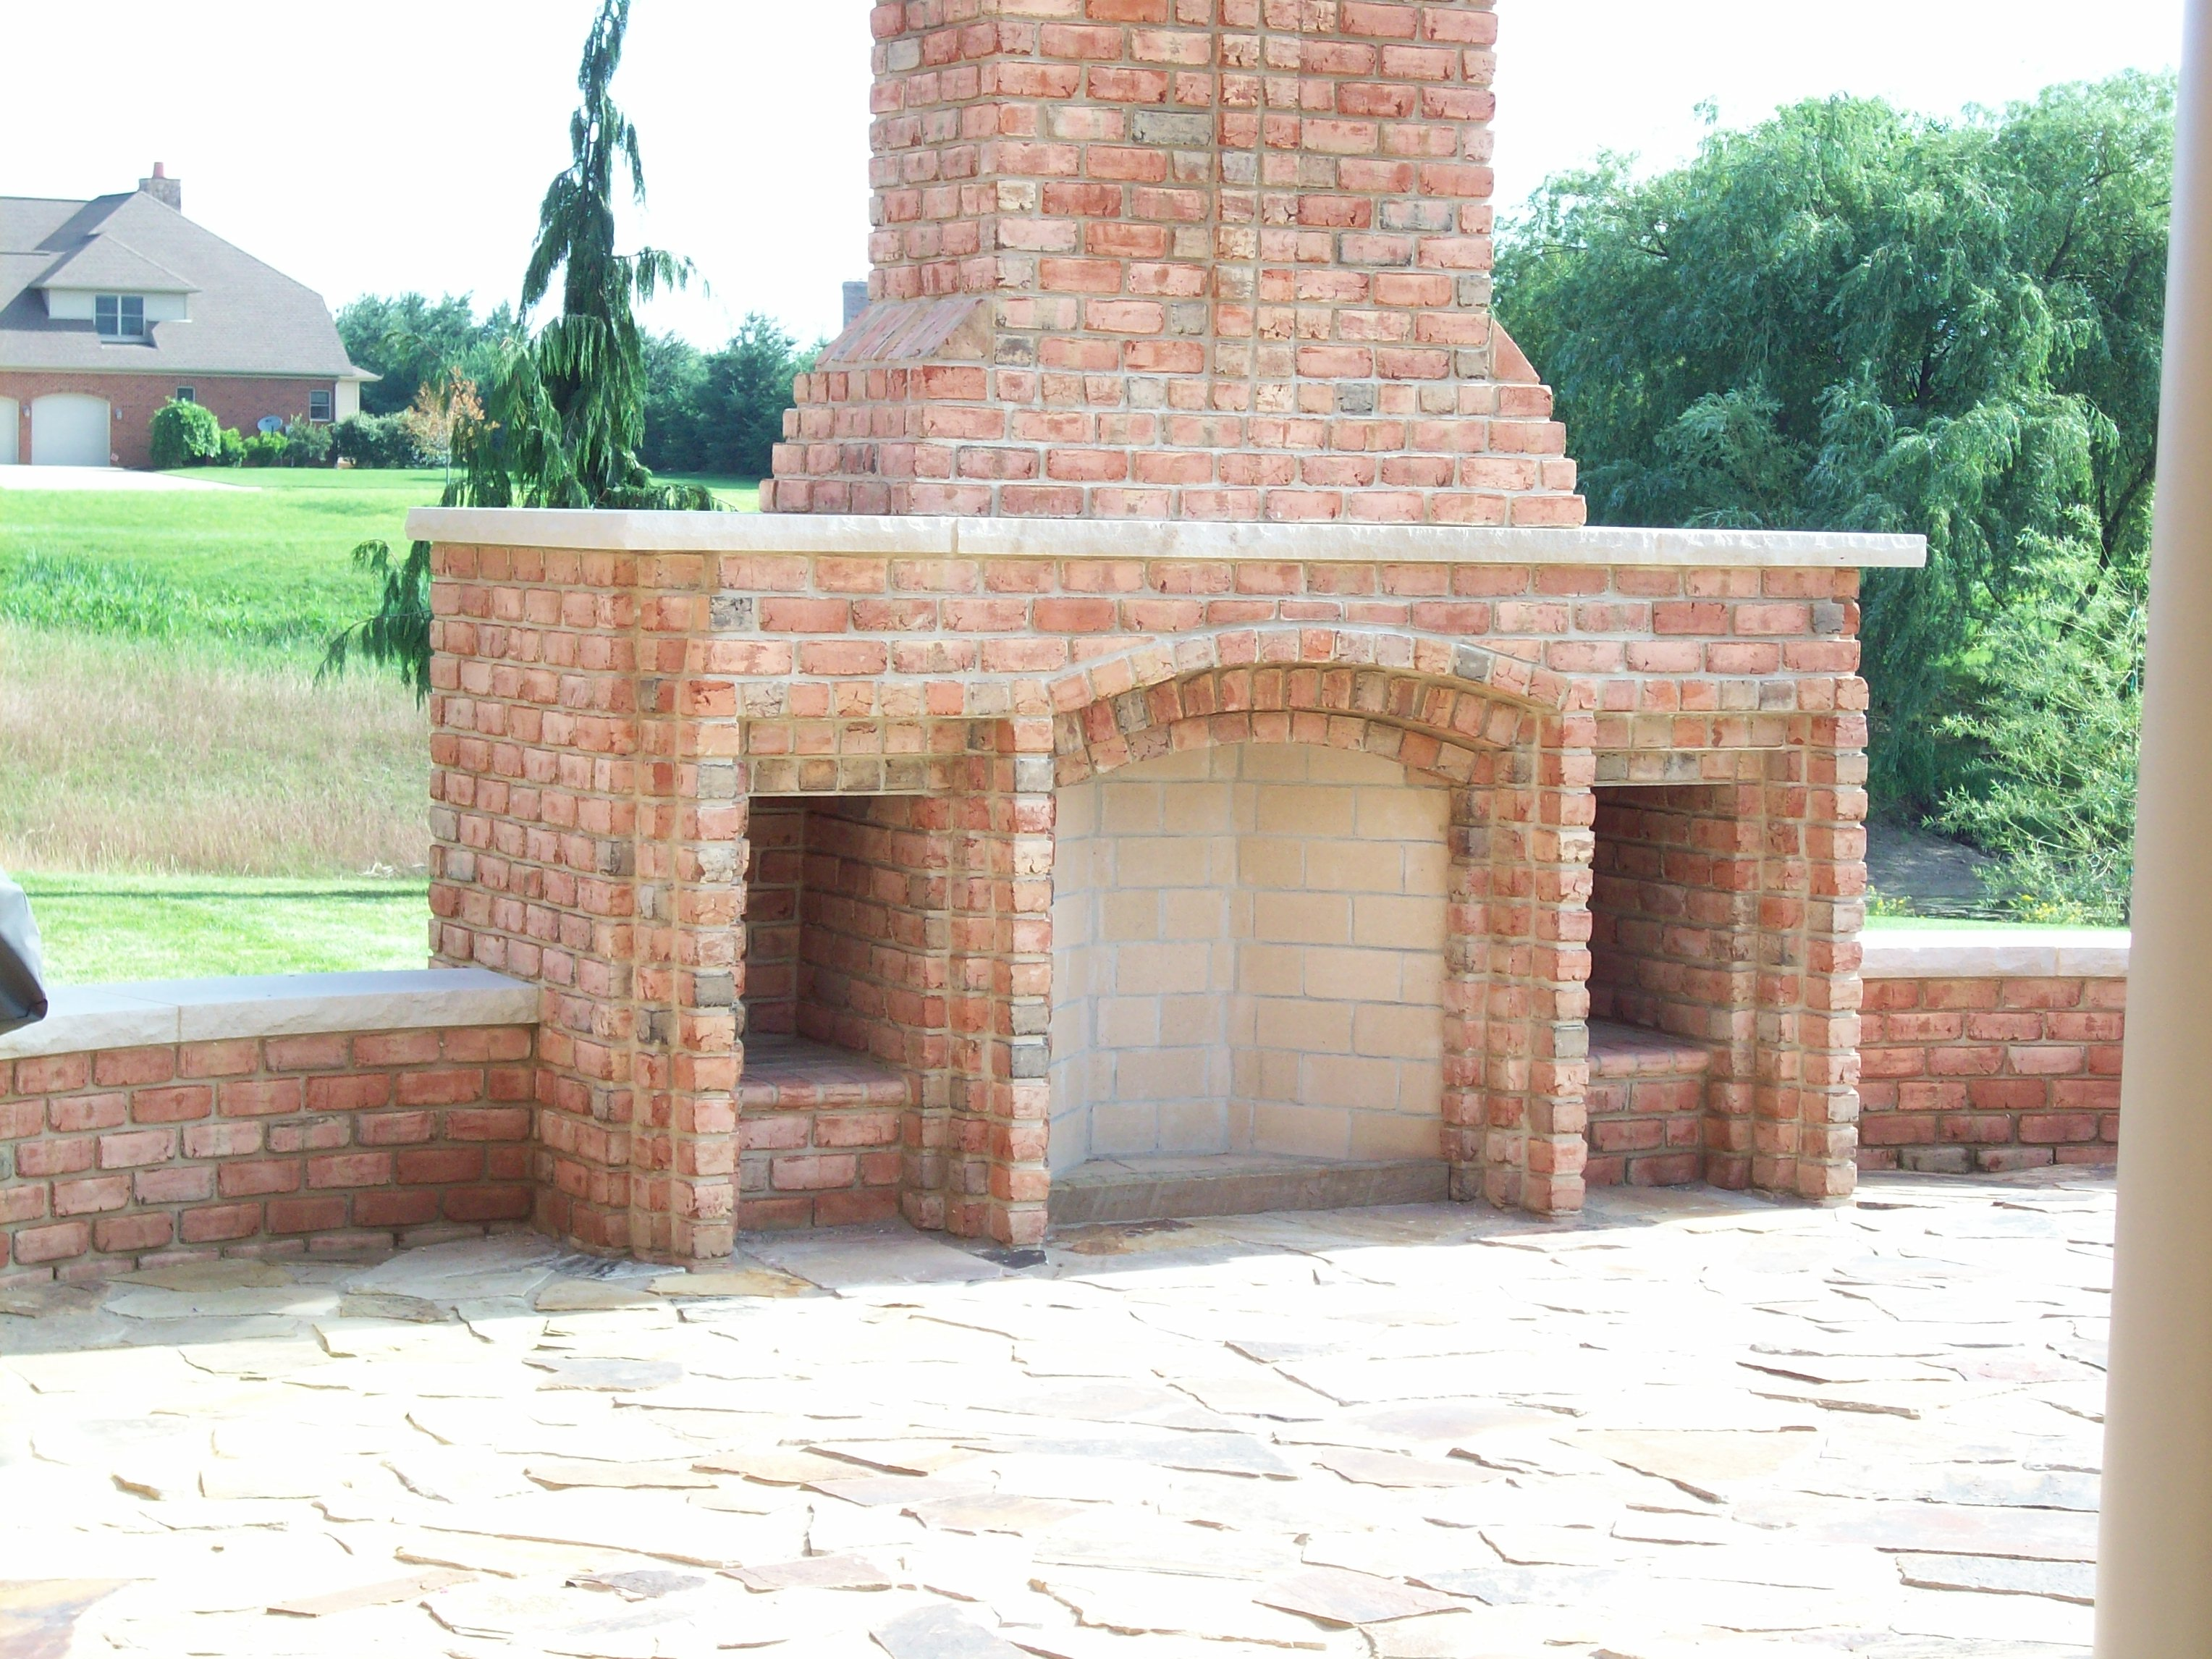 3 Foot Rumford Fireplace With Woodbox Detail